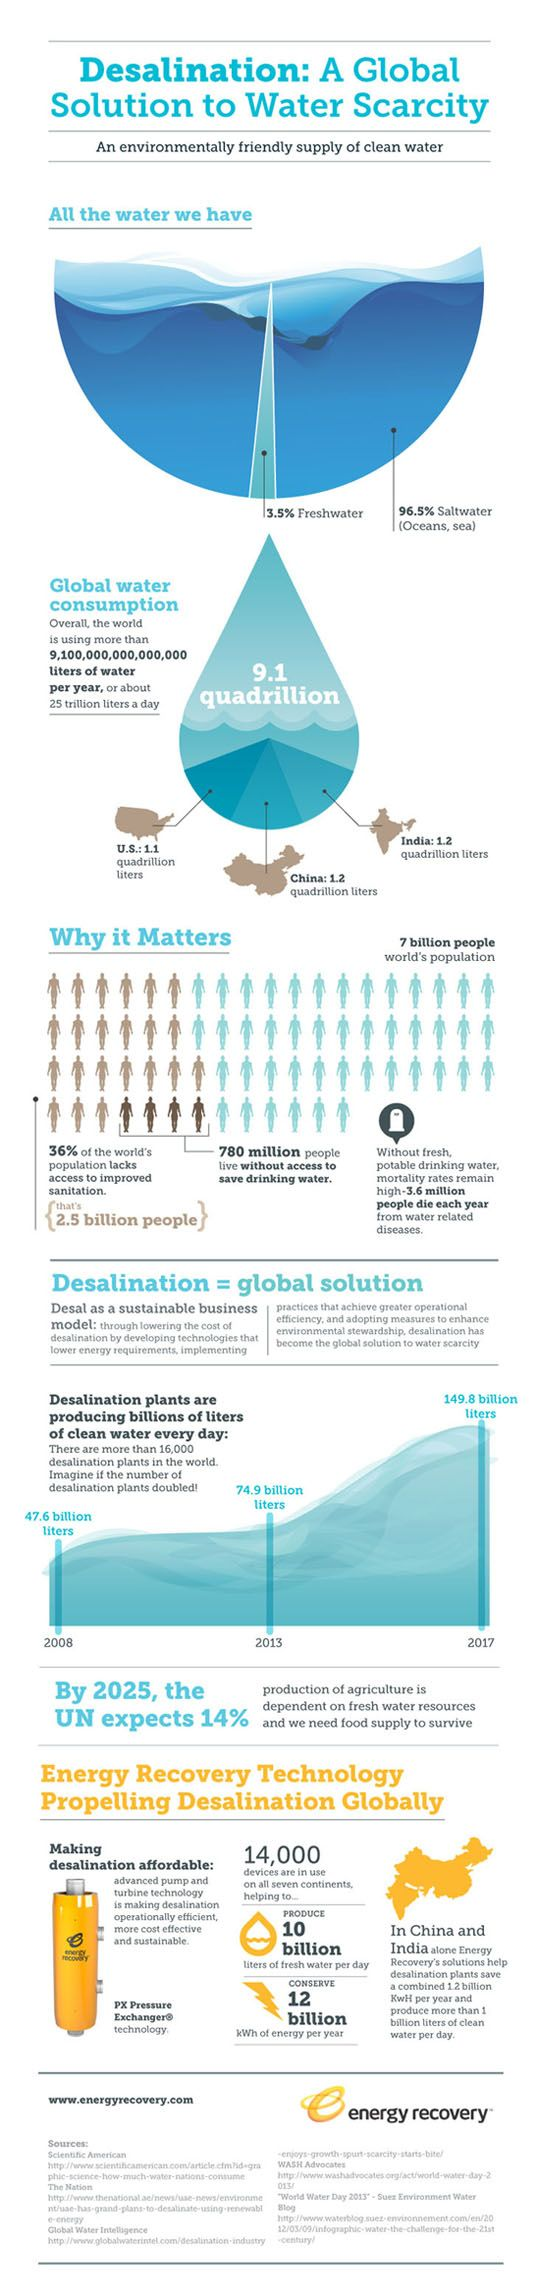 Desalinisation, a global solution to water scarcity / Energy Recovery